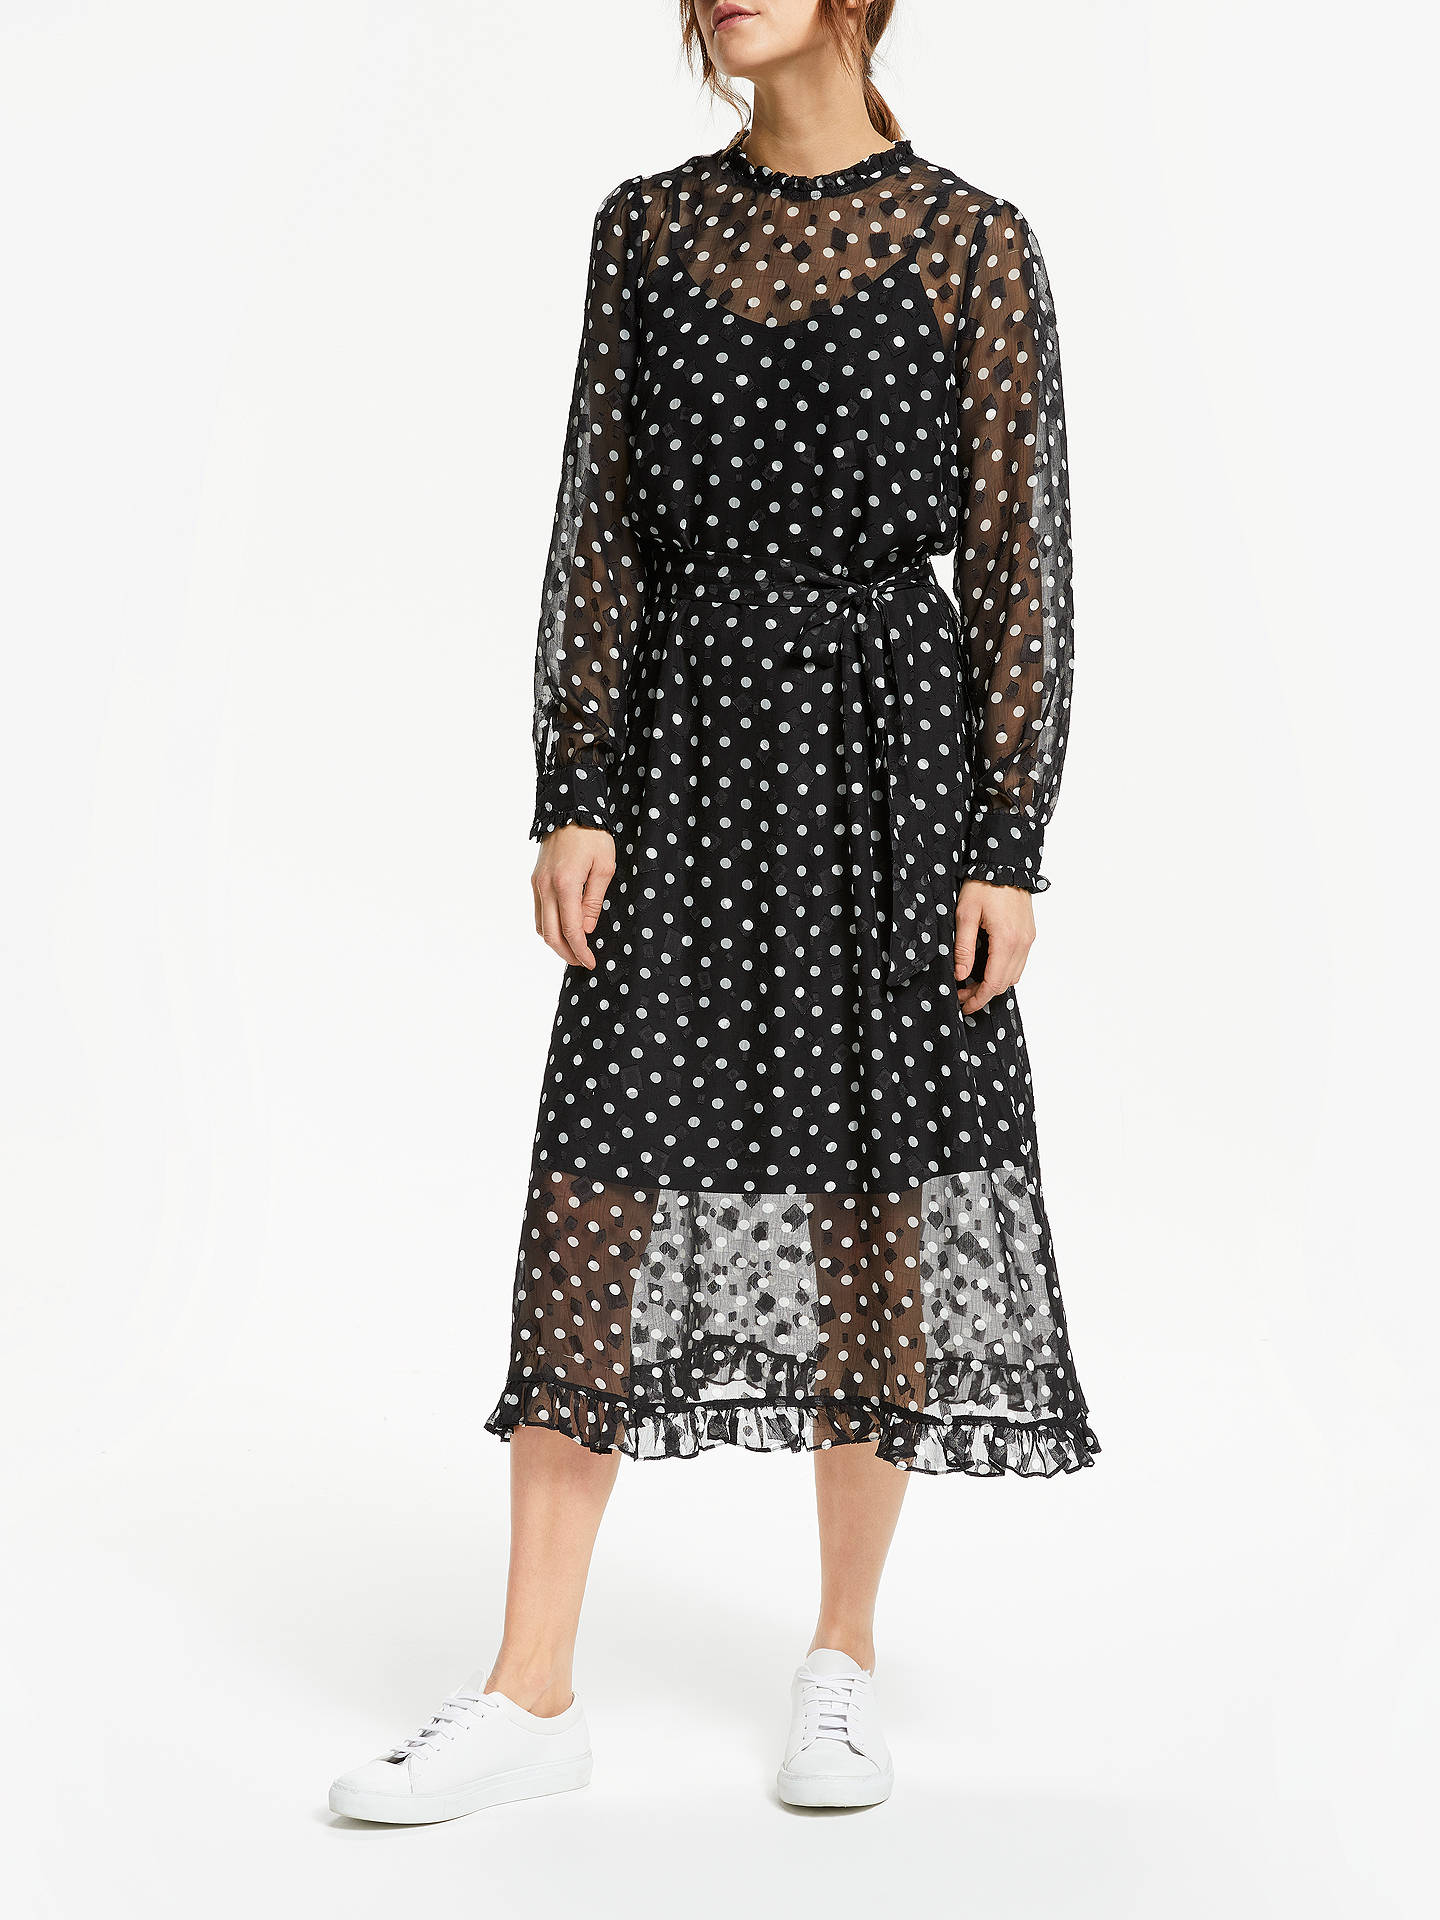 814f8f78bfe0 Buy Y.A.S Monochrome Polka Dot Dress, Black/White, M Online at johnlewis.